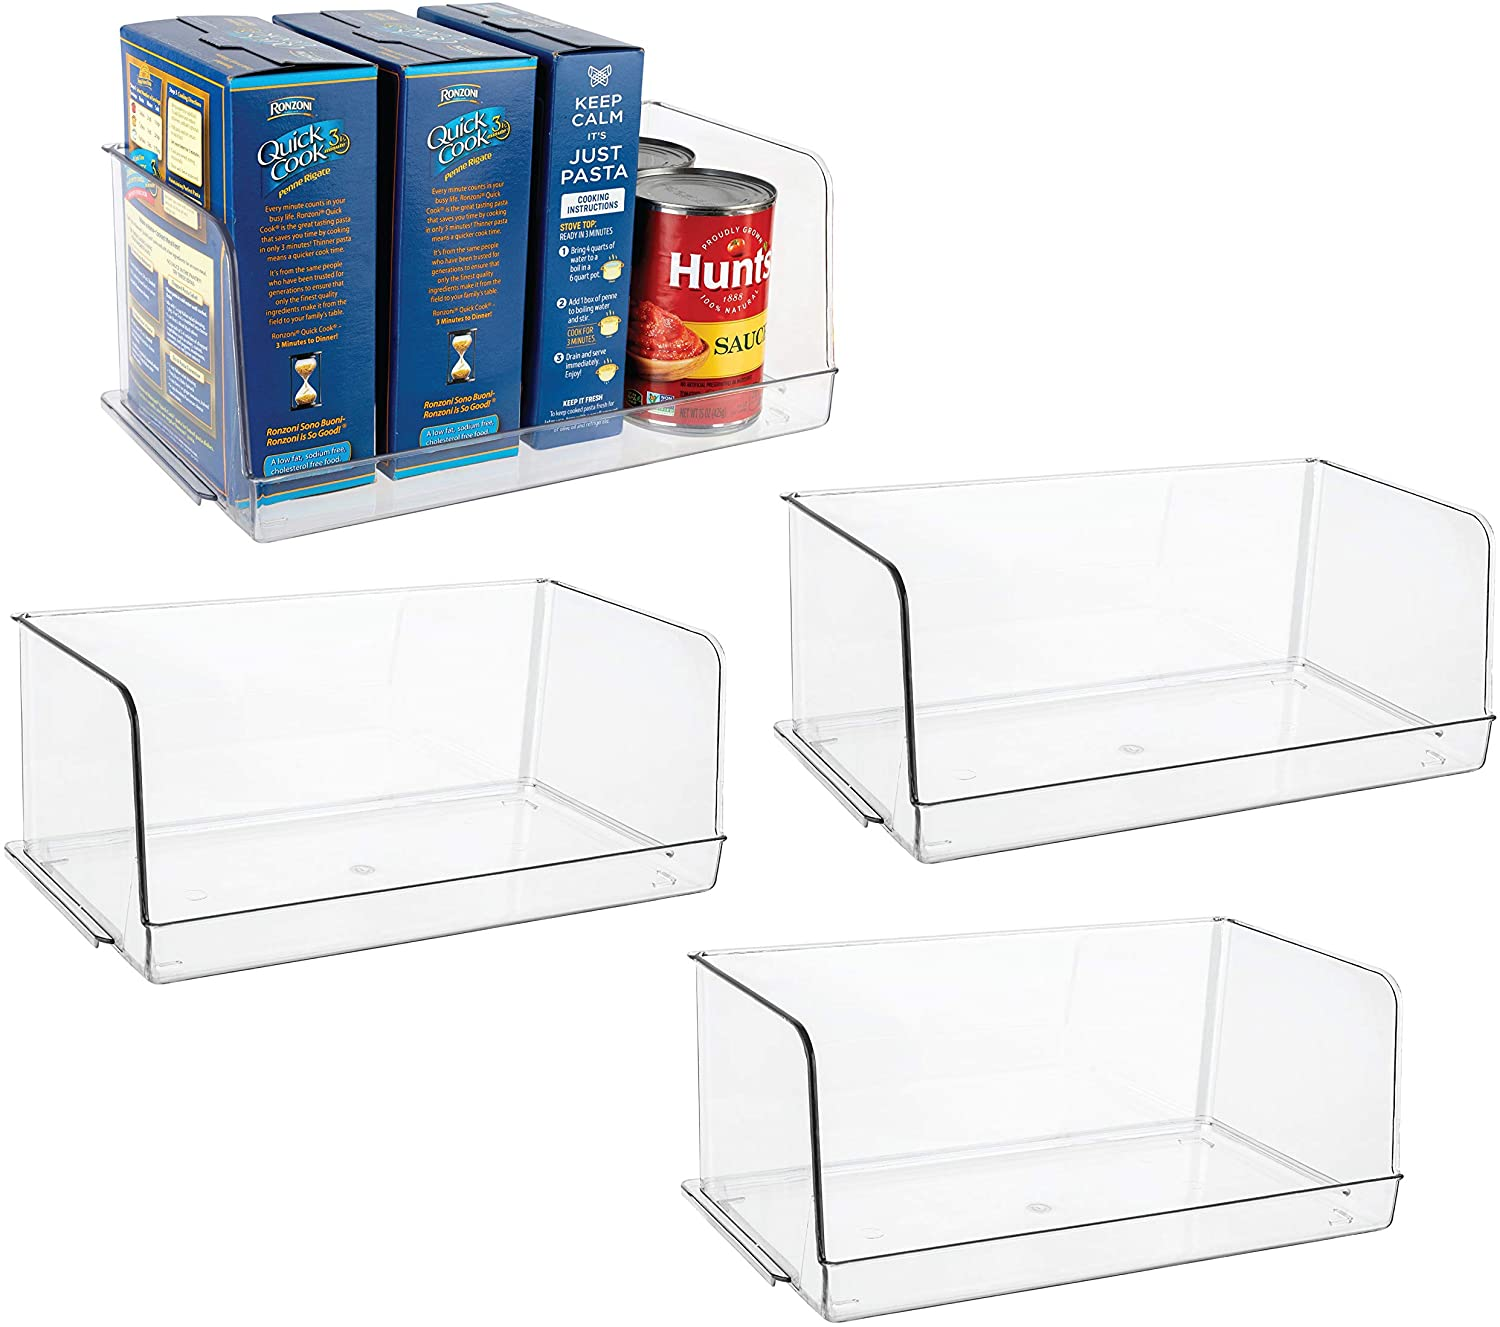 Homeries Stackable Acrylic Storage & Organization Bins Basket - for Kitchen, Pantry, Cabinets, Refrigerator, Pantry, Offices, Closets, Bedrooms, Bathrooms - Space Saving & Open Front (Pack of 4)